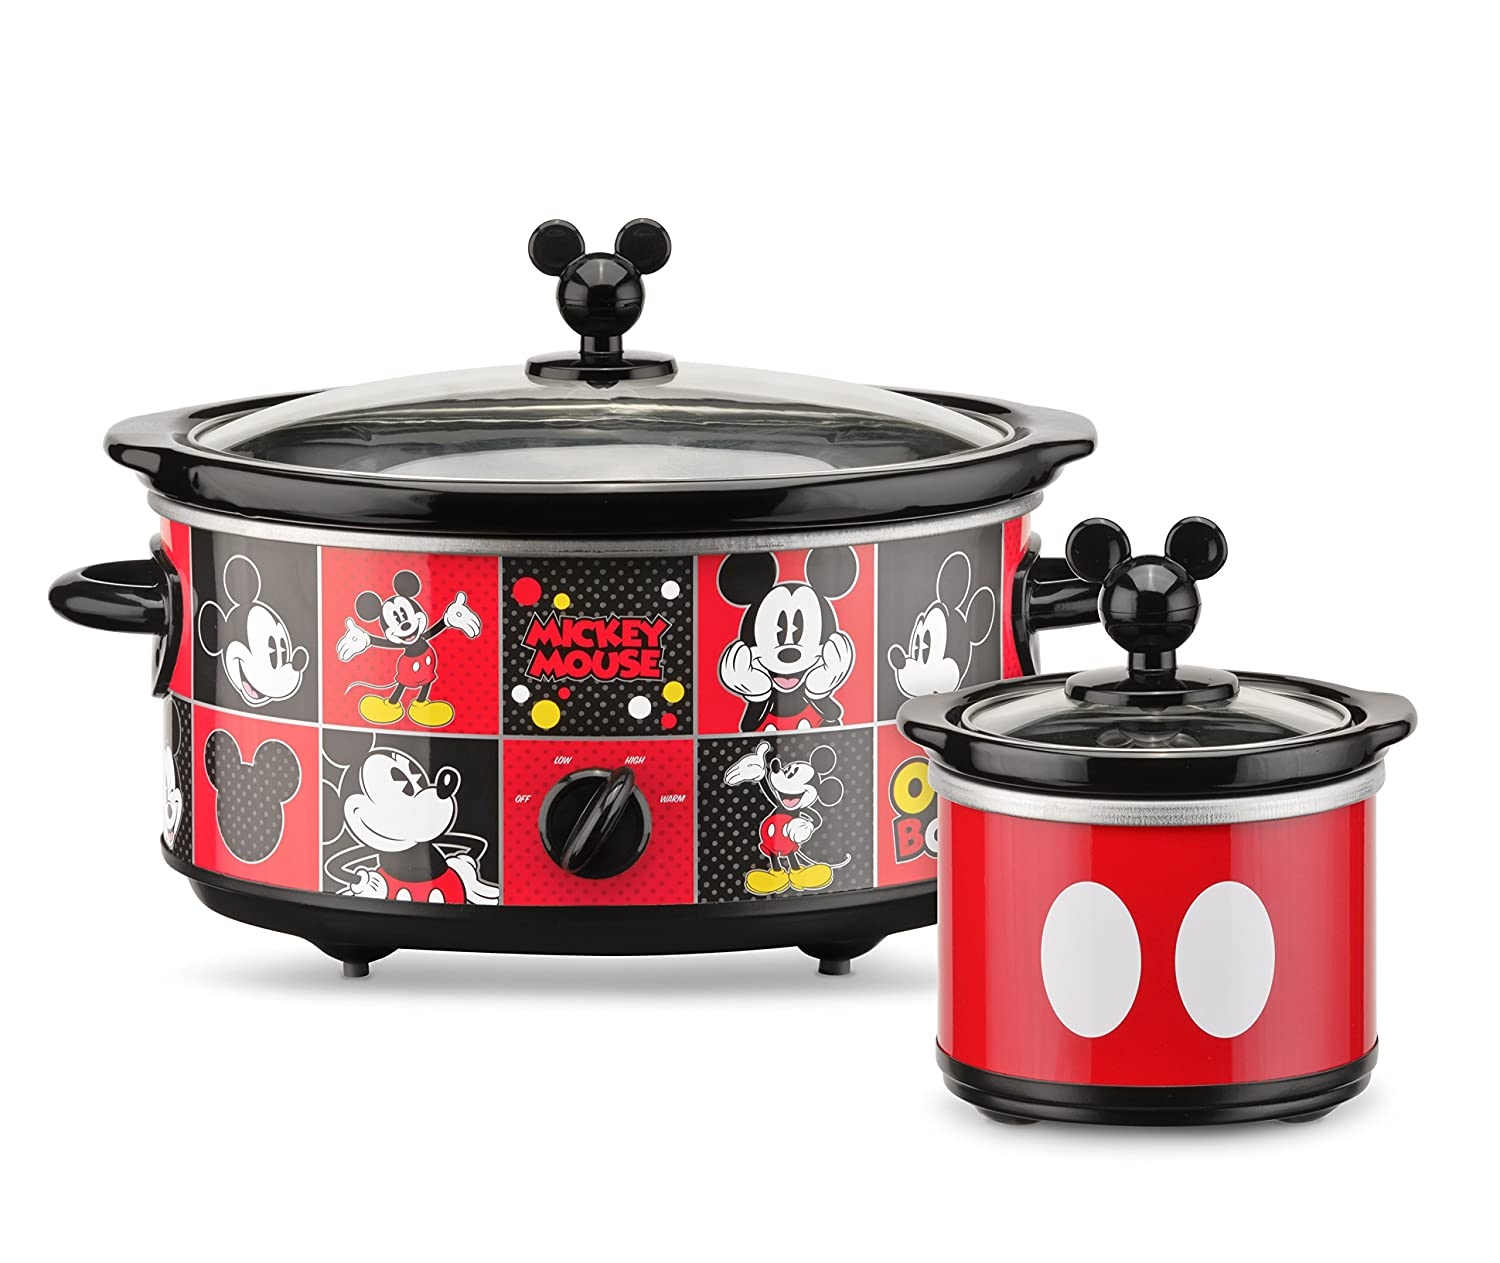 Mickey Mouse Kitchen Appliances Amazoncom Disney Dcm 502 Mickey Mouse 5 Quart Oval Slow Cooker